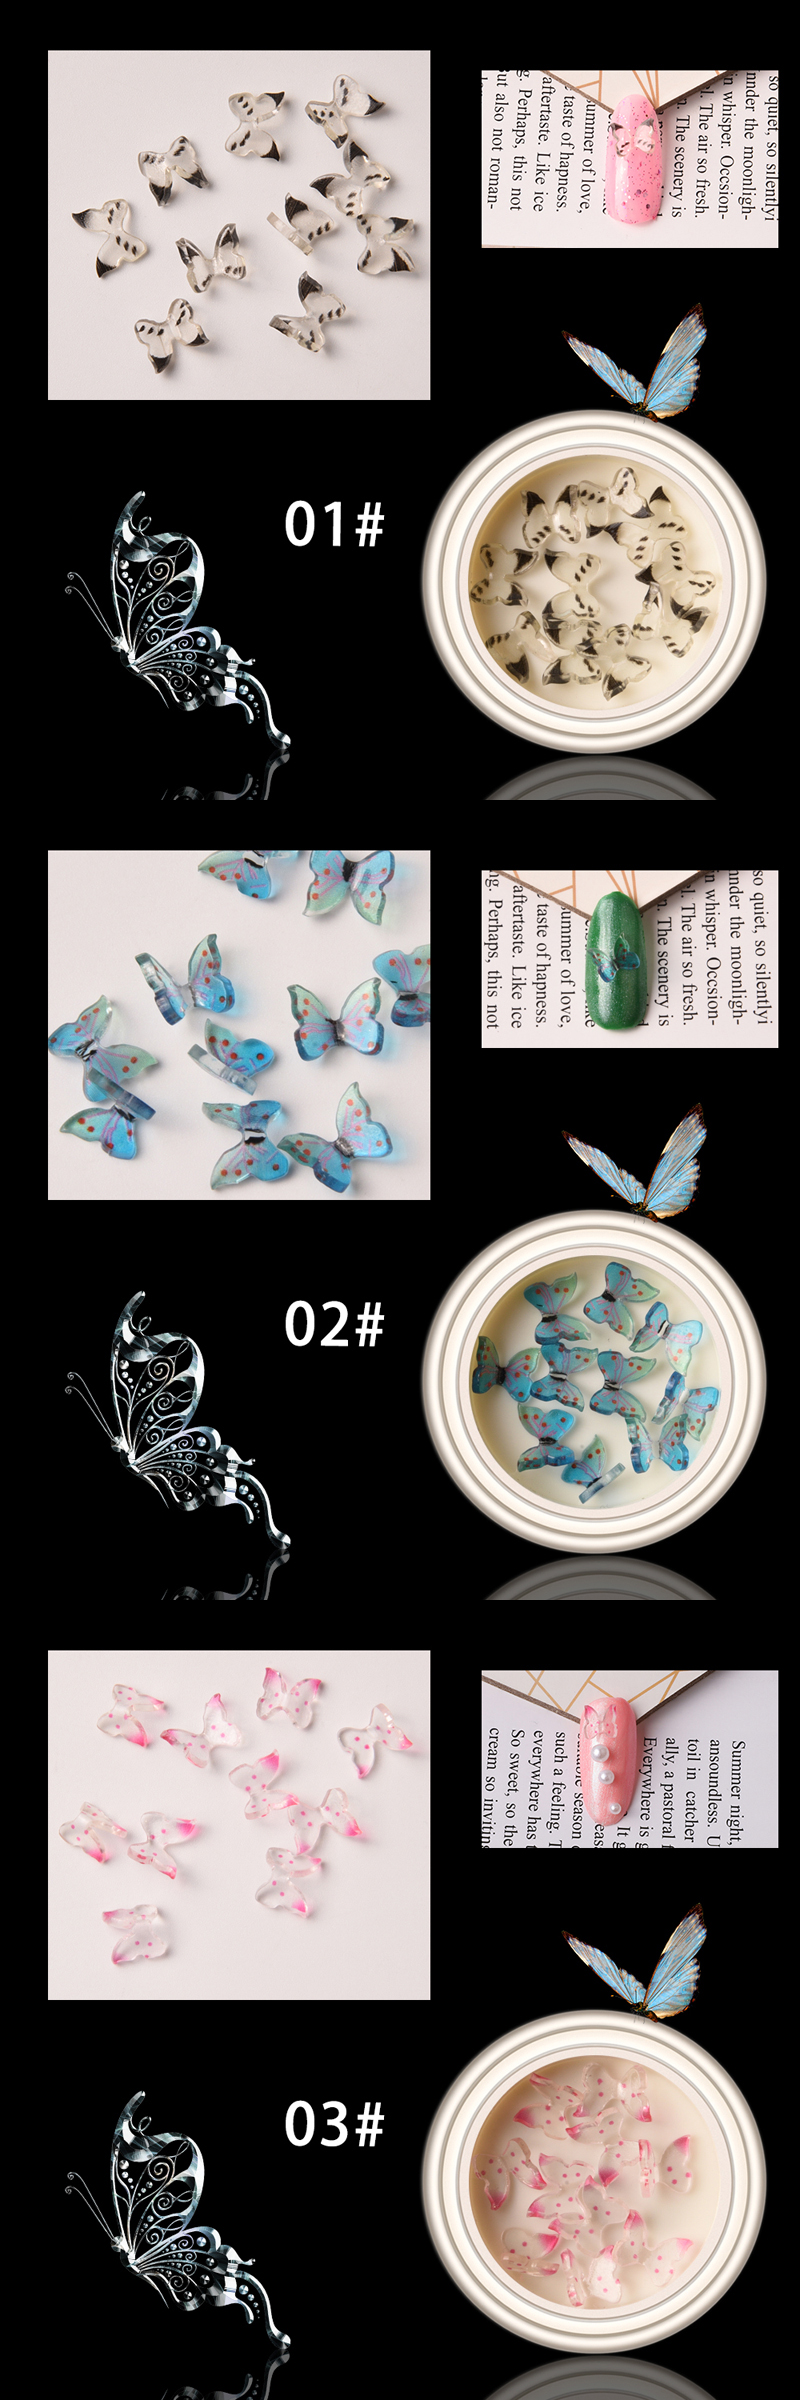 New arrival 14 colors resin material 3d nail art butterflies decals nail decorations butterfly nail art